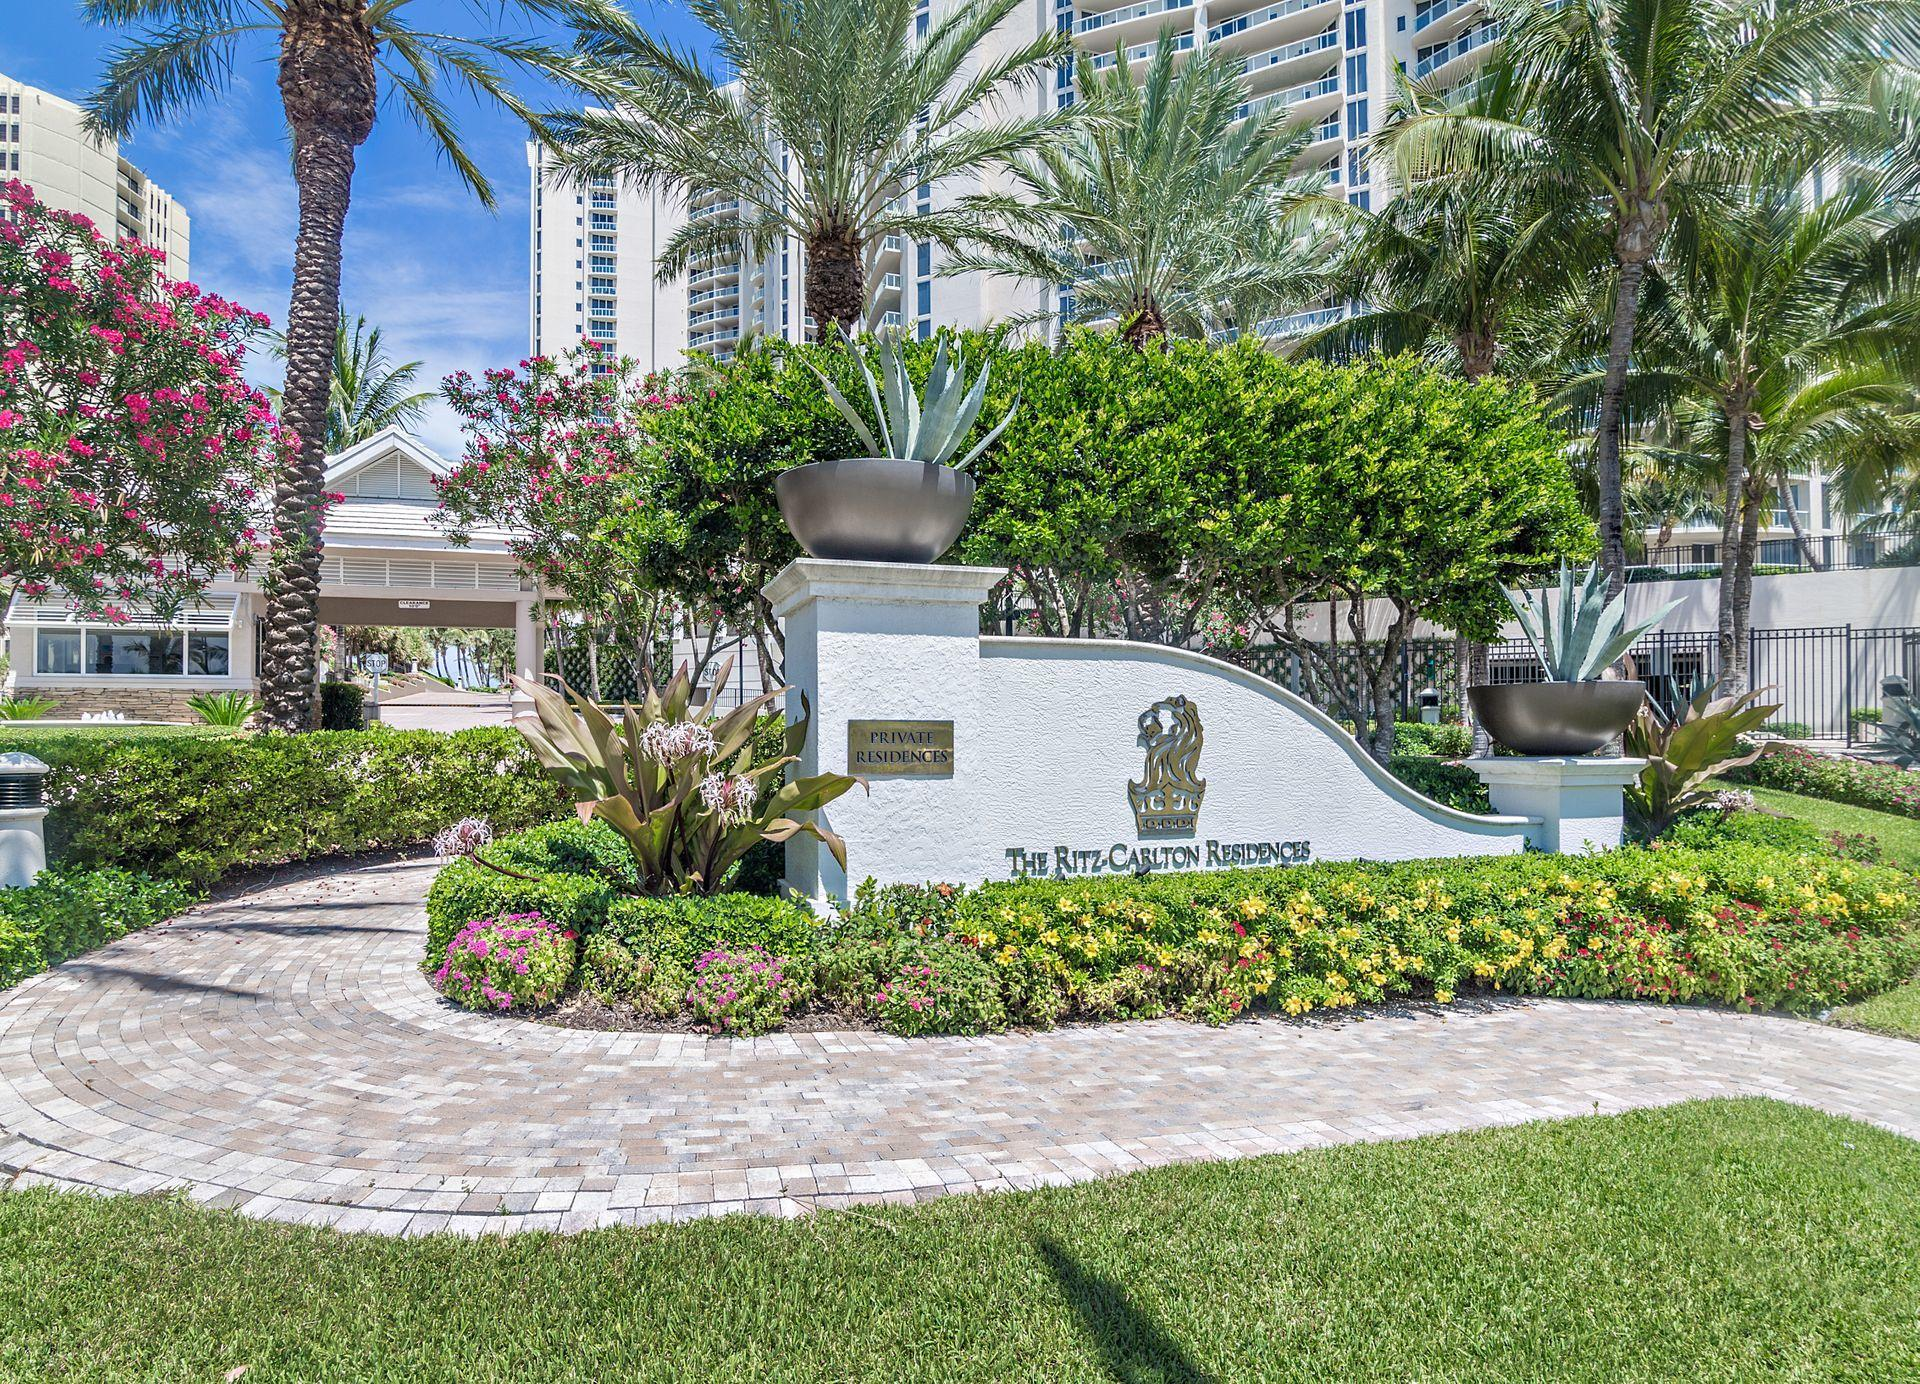 Home for sale in Ritz-Carlton Residences Singer Island Florida